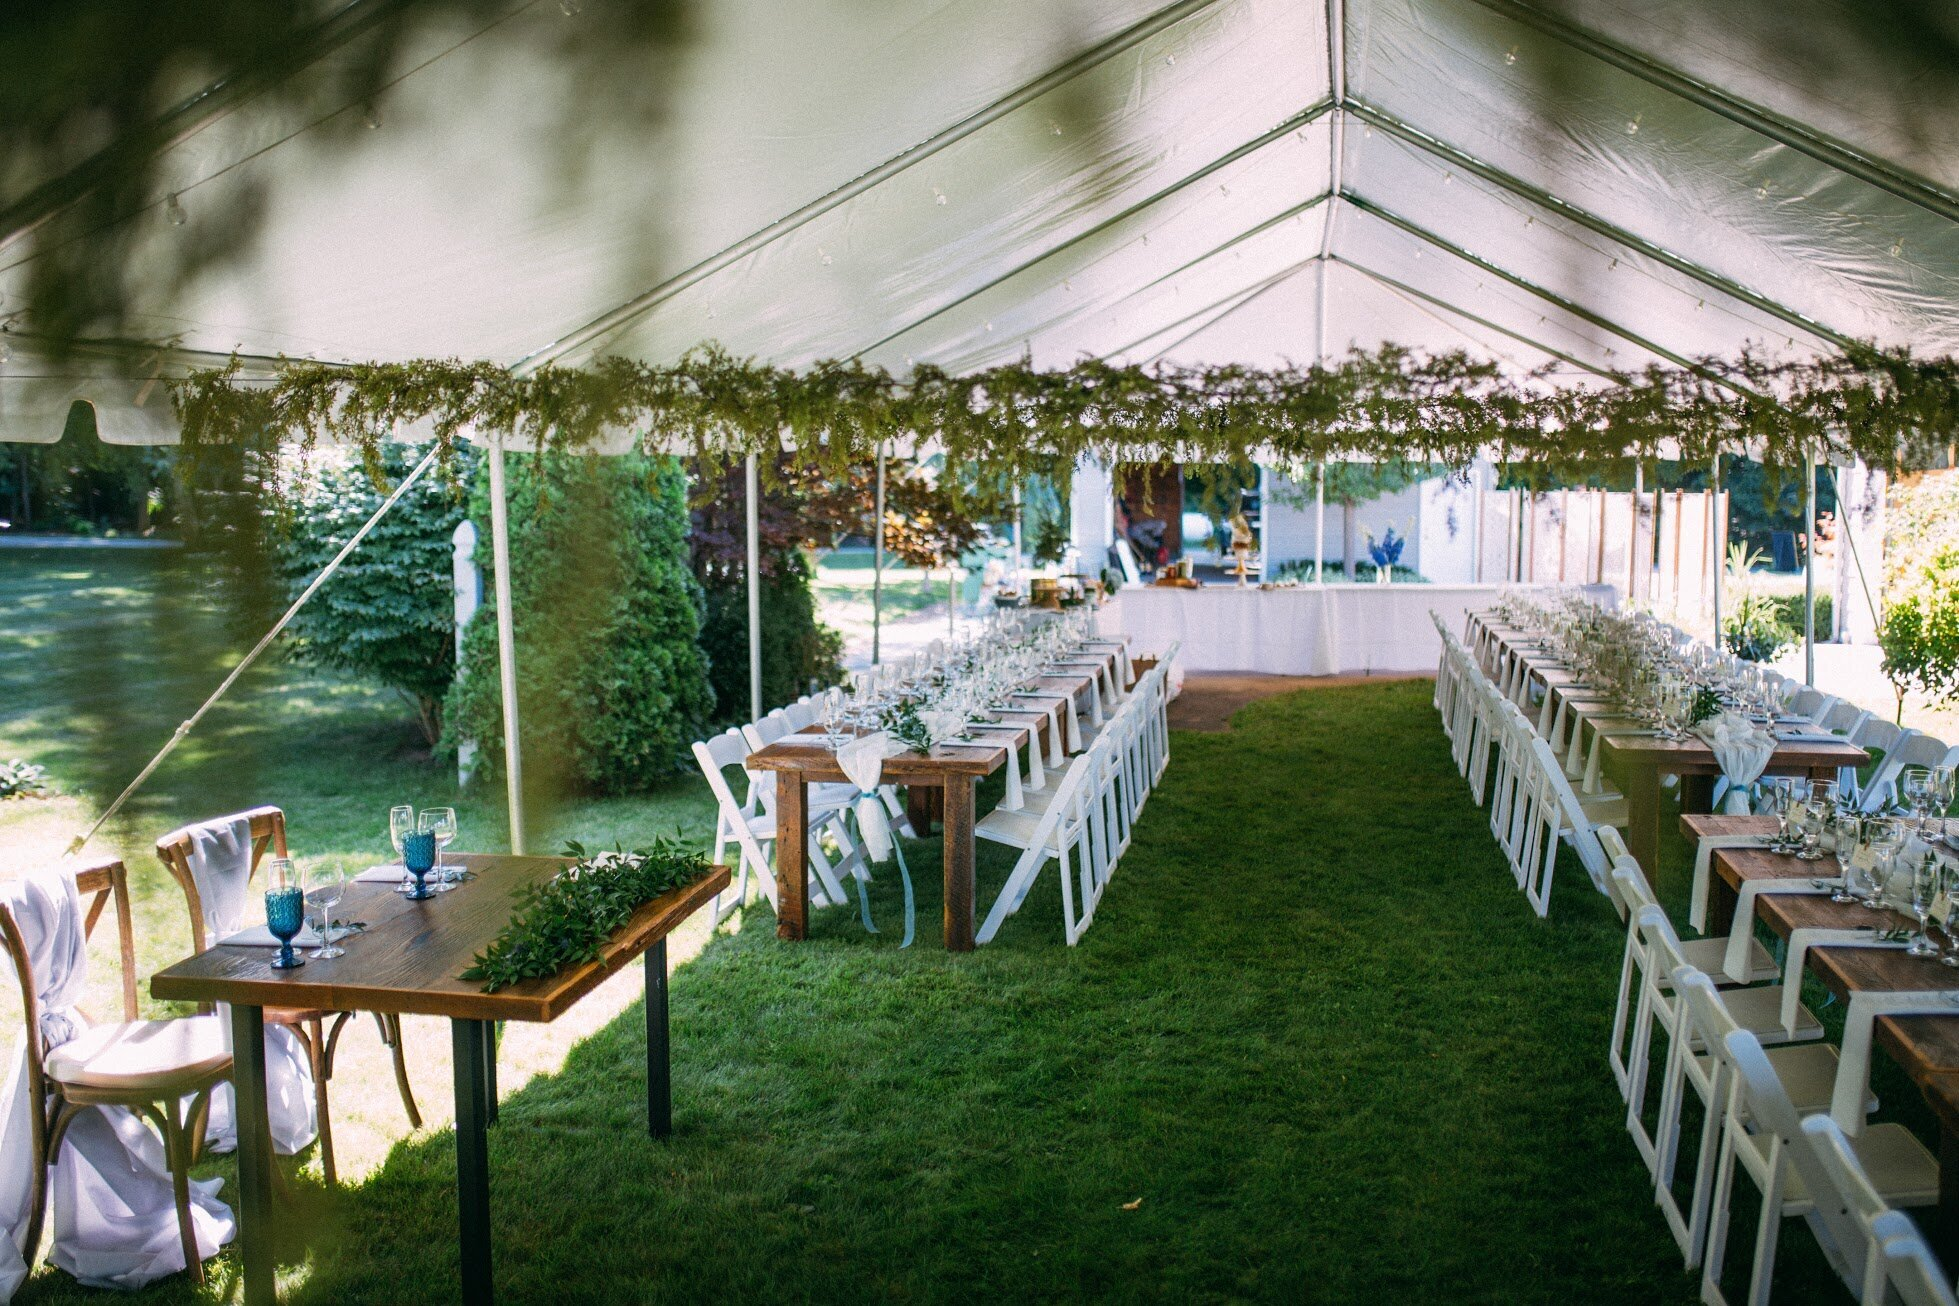 Tents for an outdoor wedding